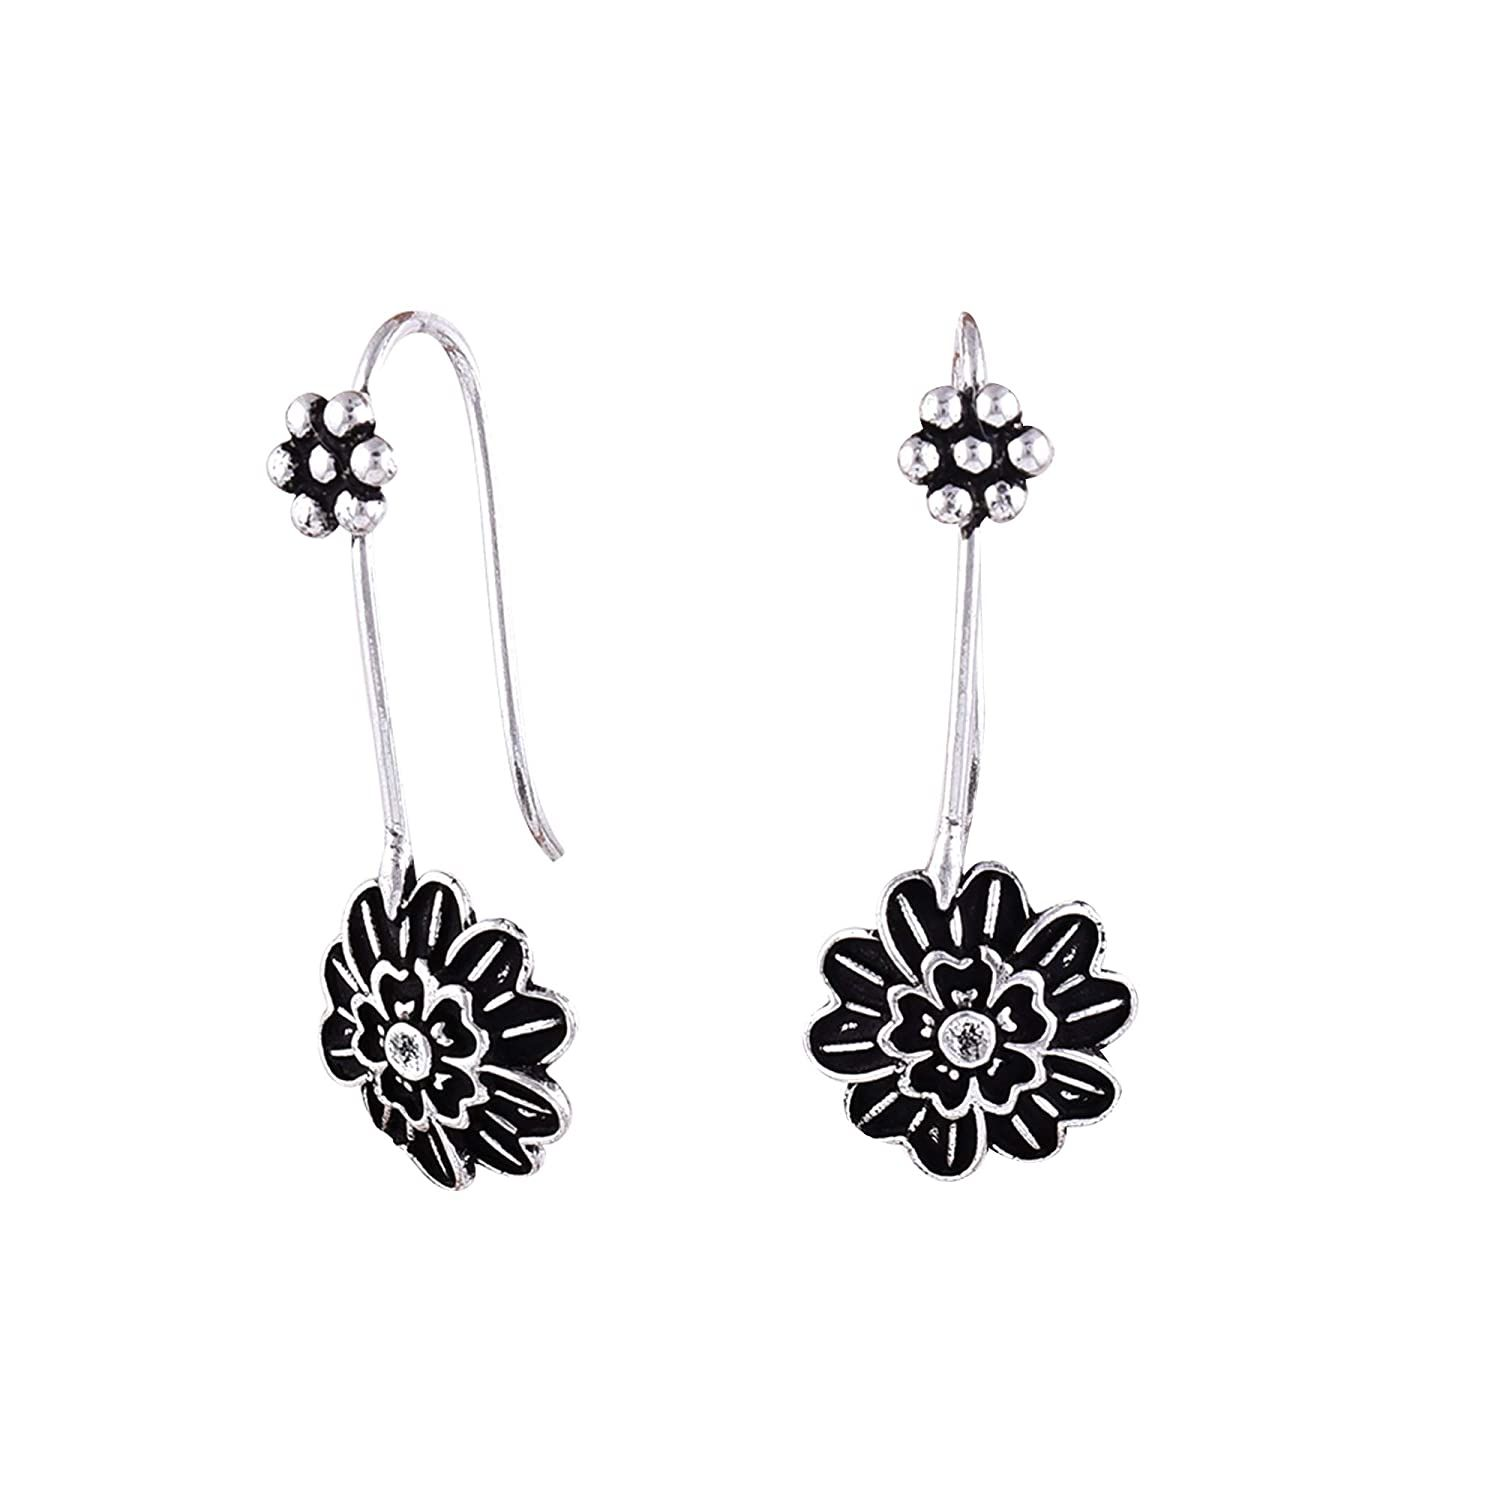 Black Oxidize Earring Sterling Silver Earrings,Fashionable 1 Pair Floral Round Shape Beautiful Design Silver Black Oxidize Earring